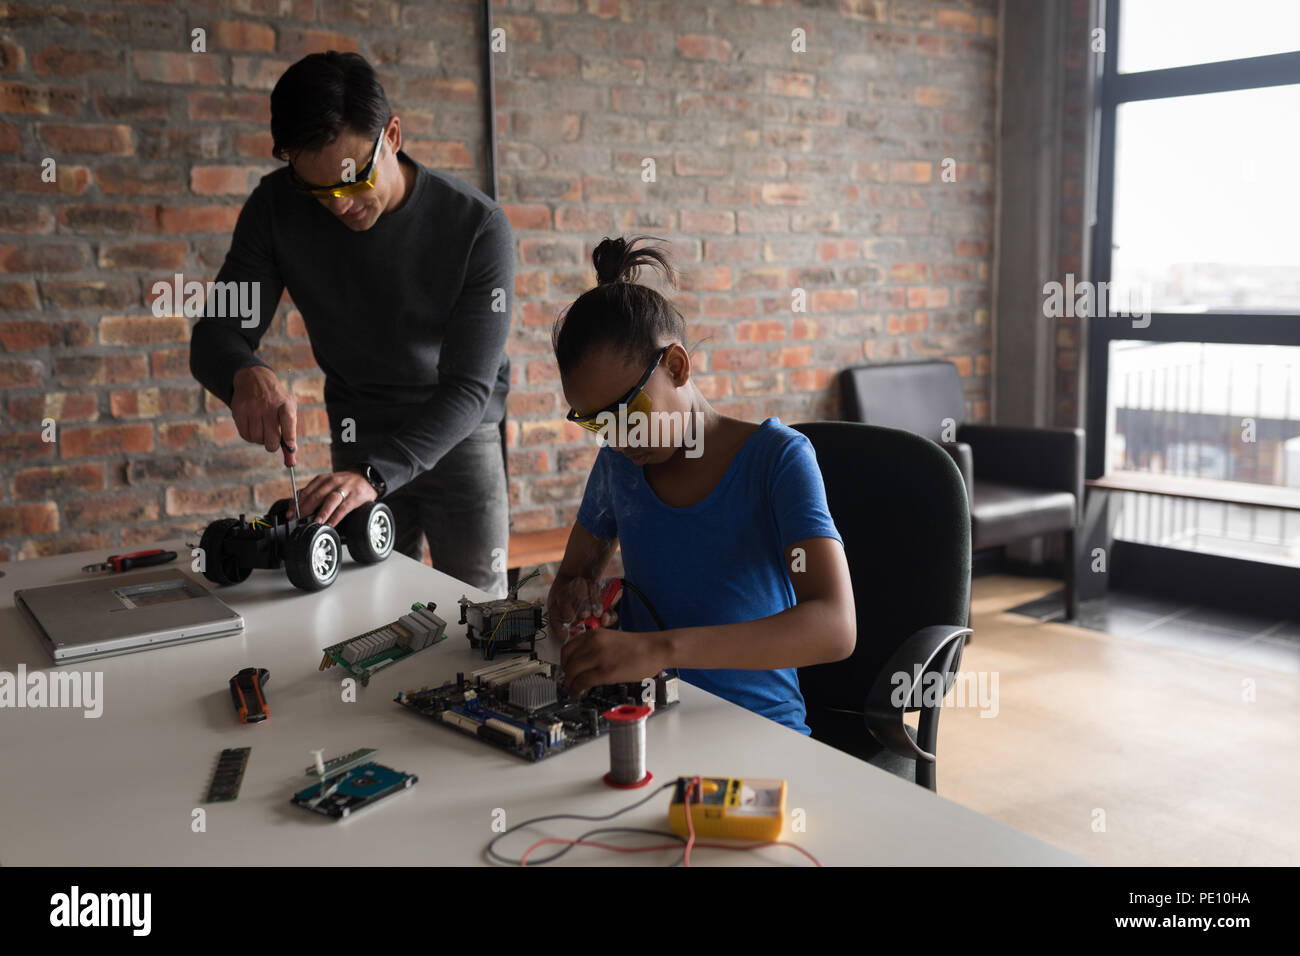 Man Repairing Circuit Board Stock Photos Circuitboardtablejpg Father And Daughter Electric Model Car Image